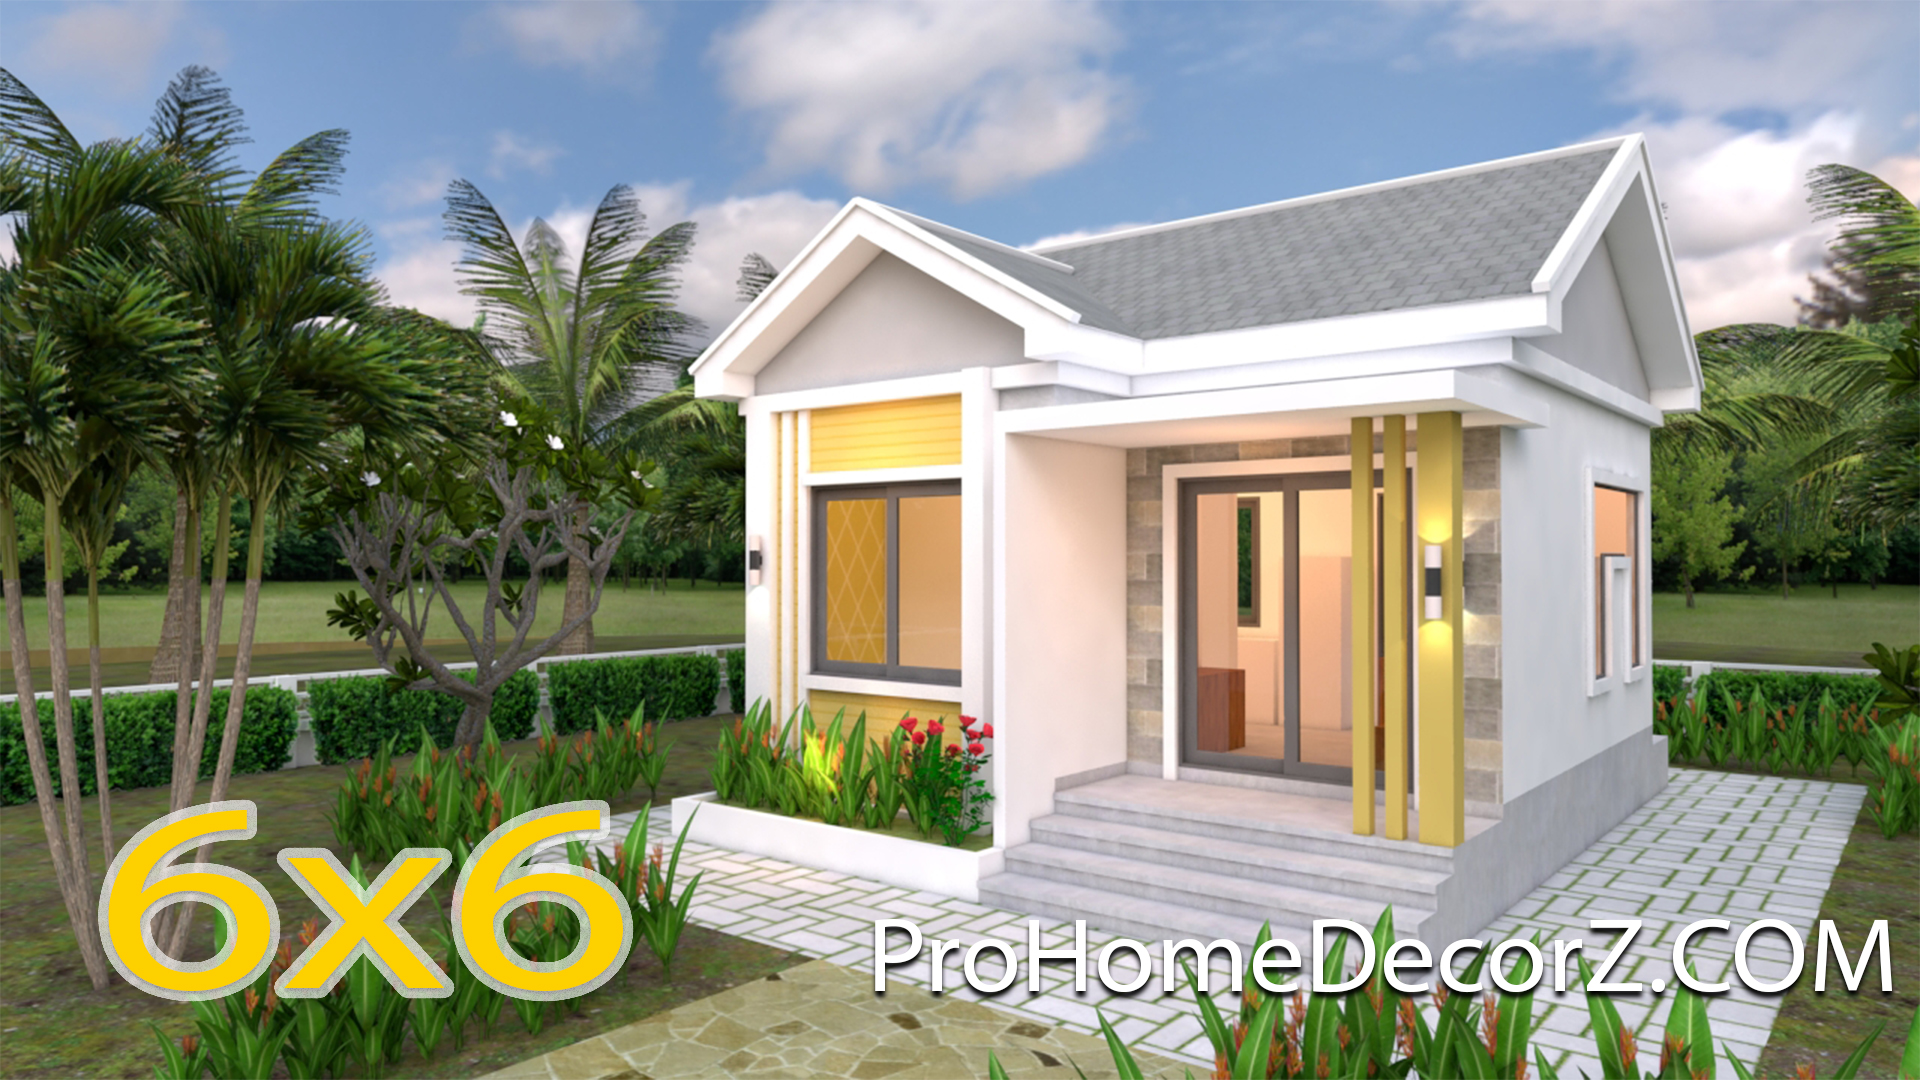 Small Cottage Designs 6x6 Meters 20x20 Feet Pro Home Decorz